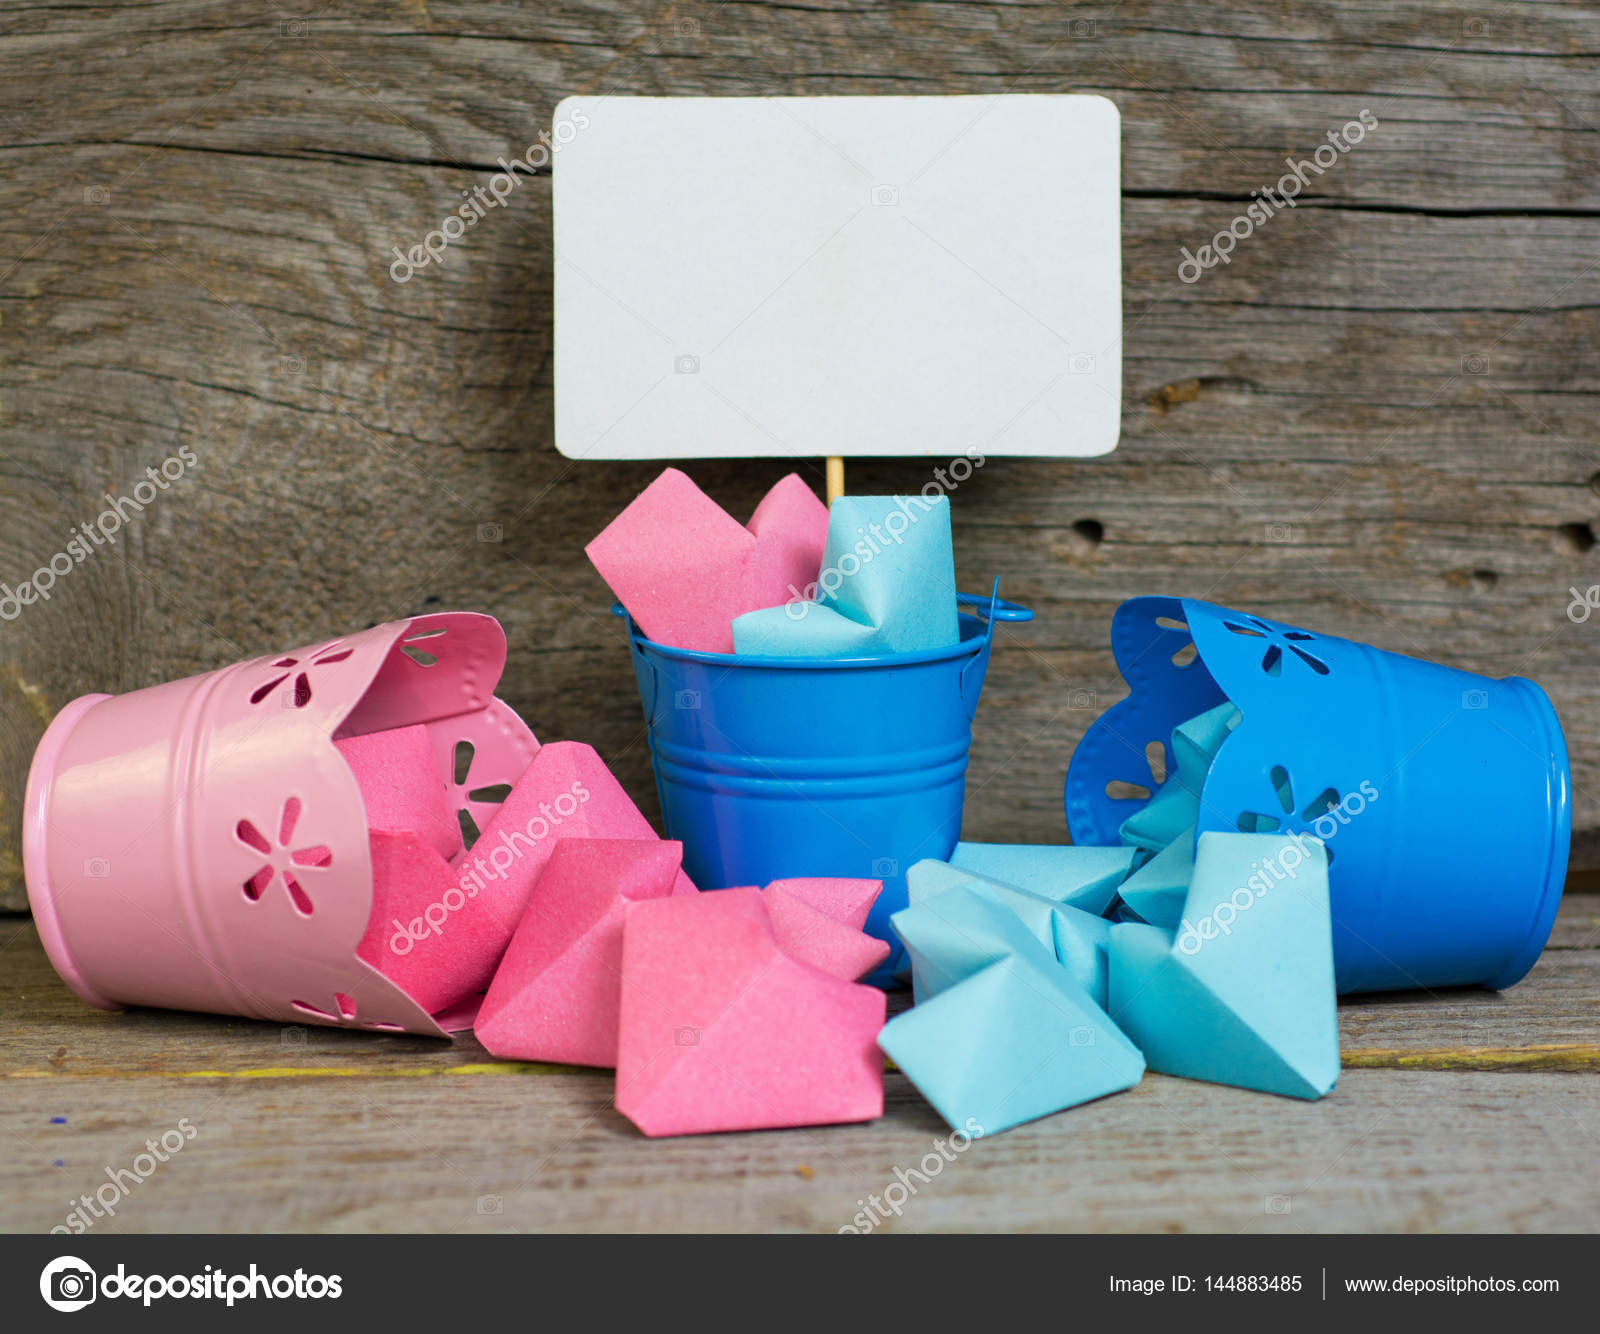 Paper Hearts Pink And Blue Color In Decorative Buckets Abstract